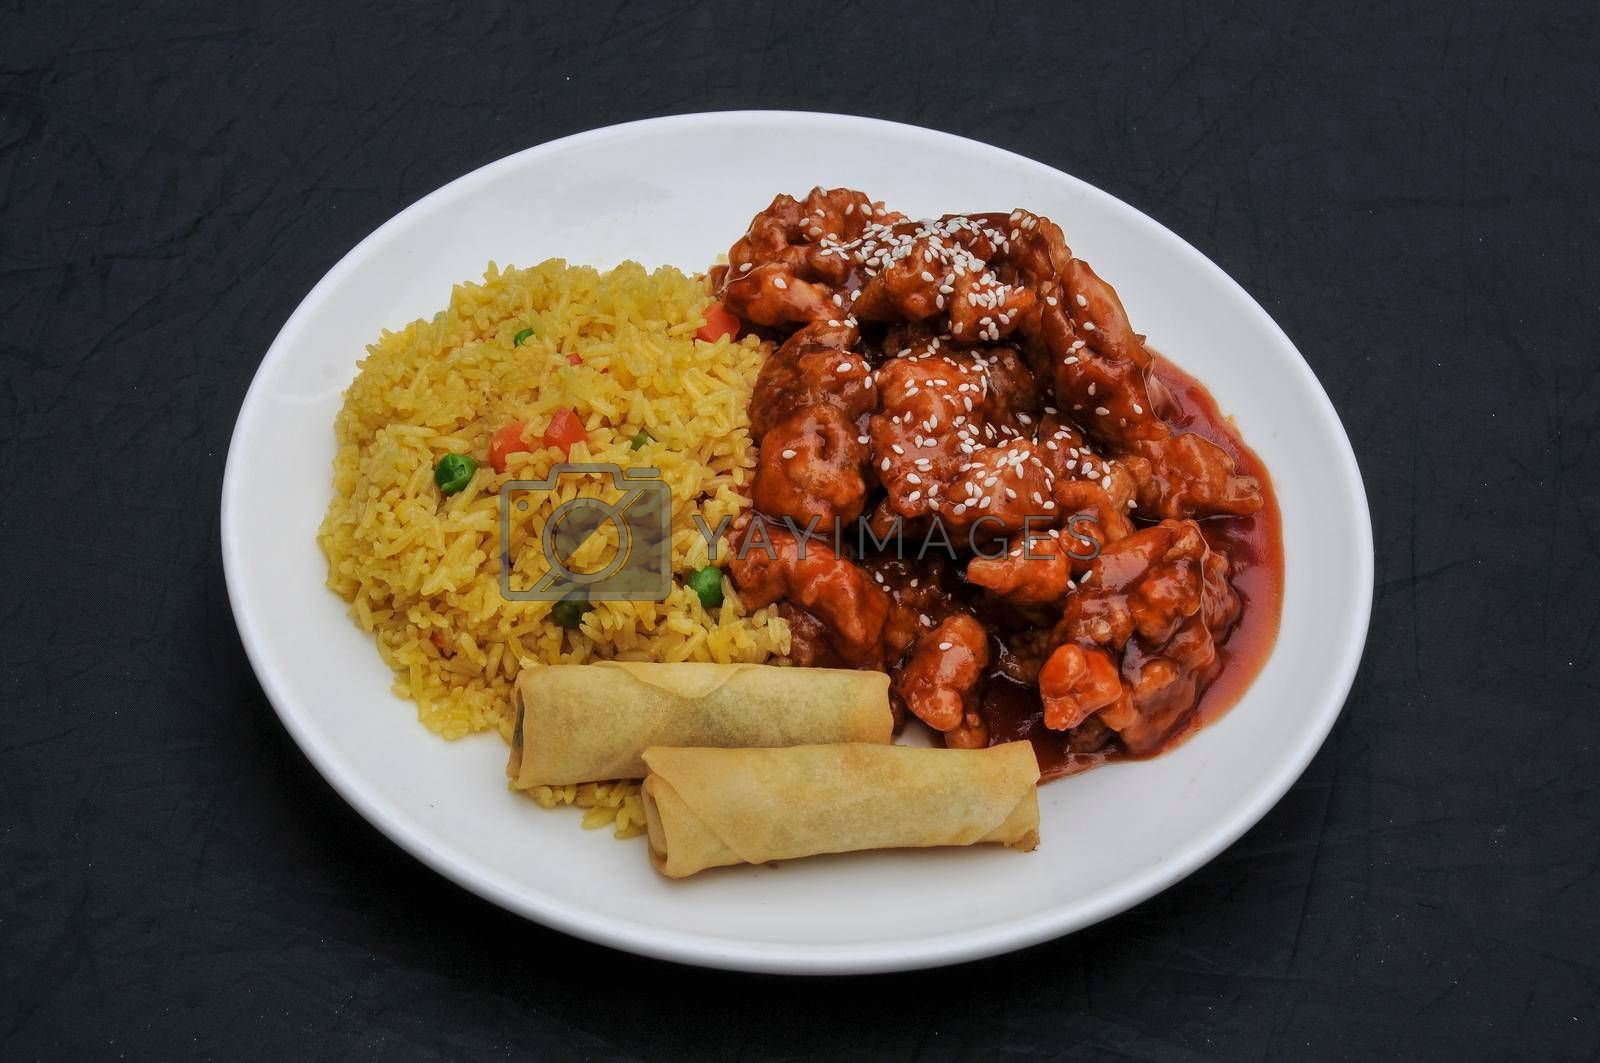 Traditional and authentic Chinese cuisine known as sesame chicken